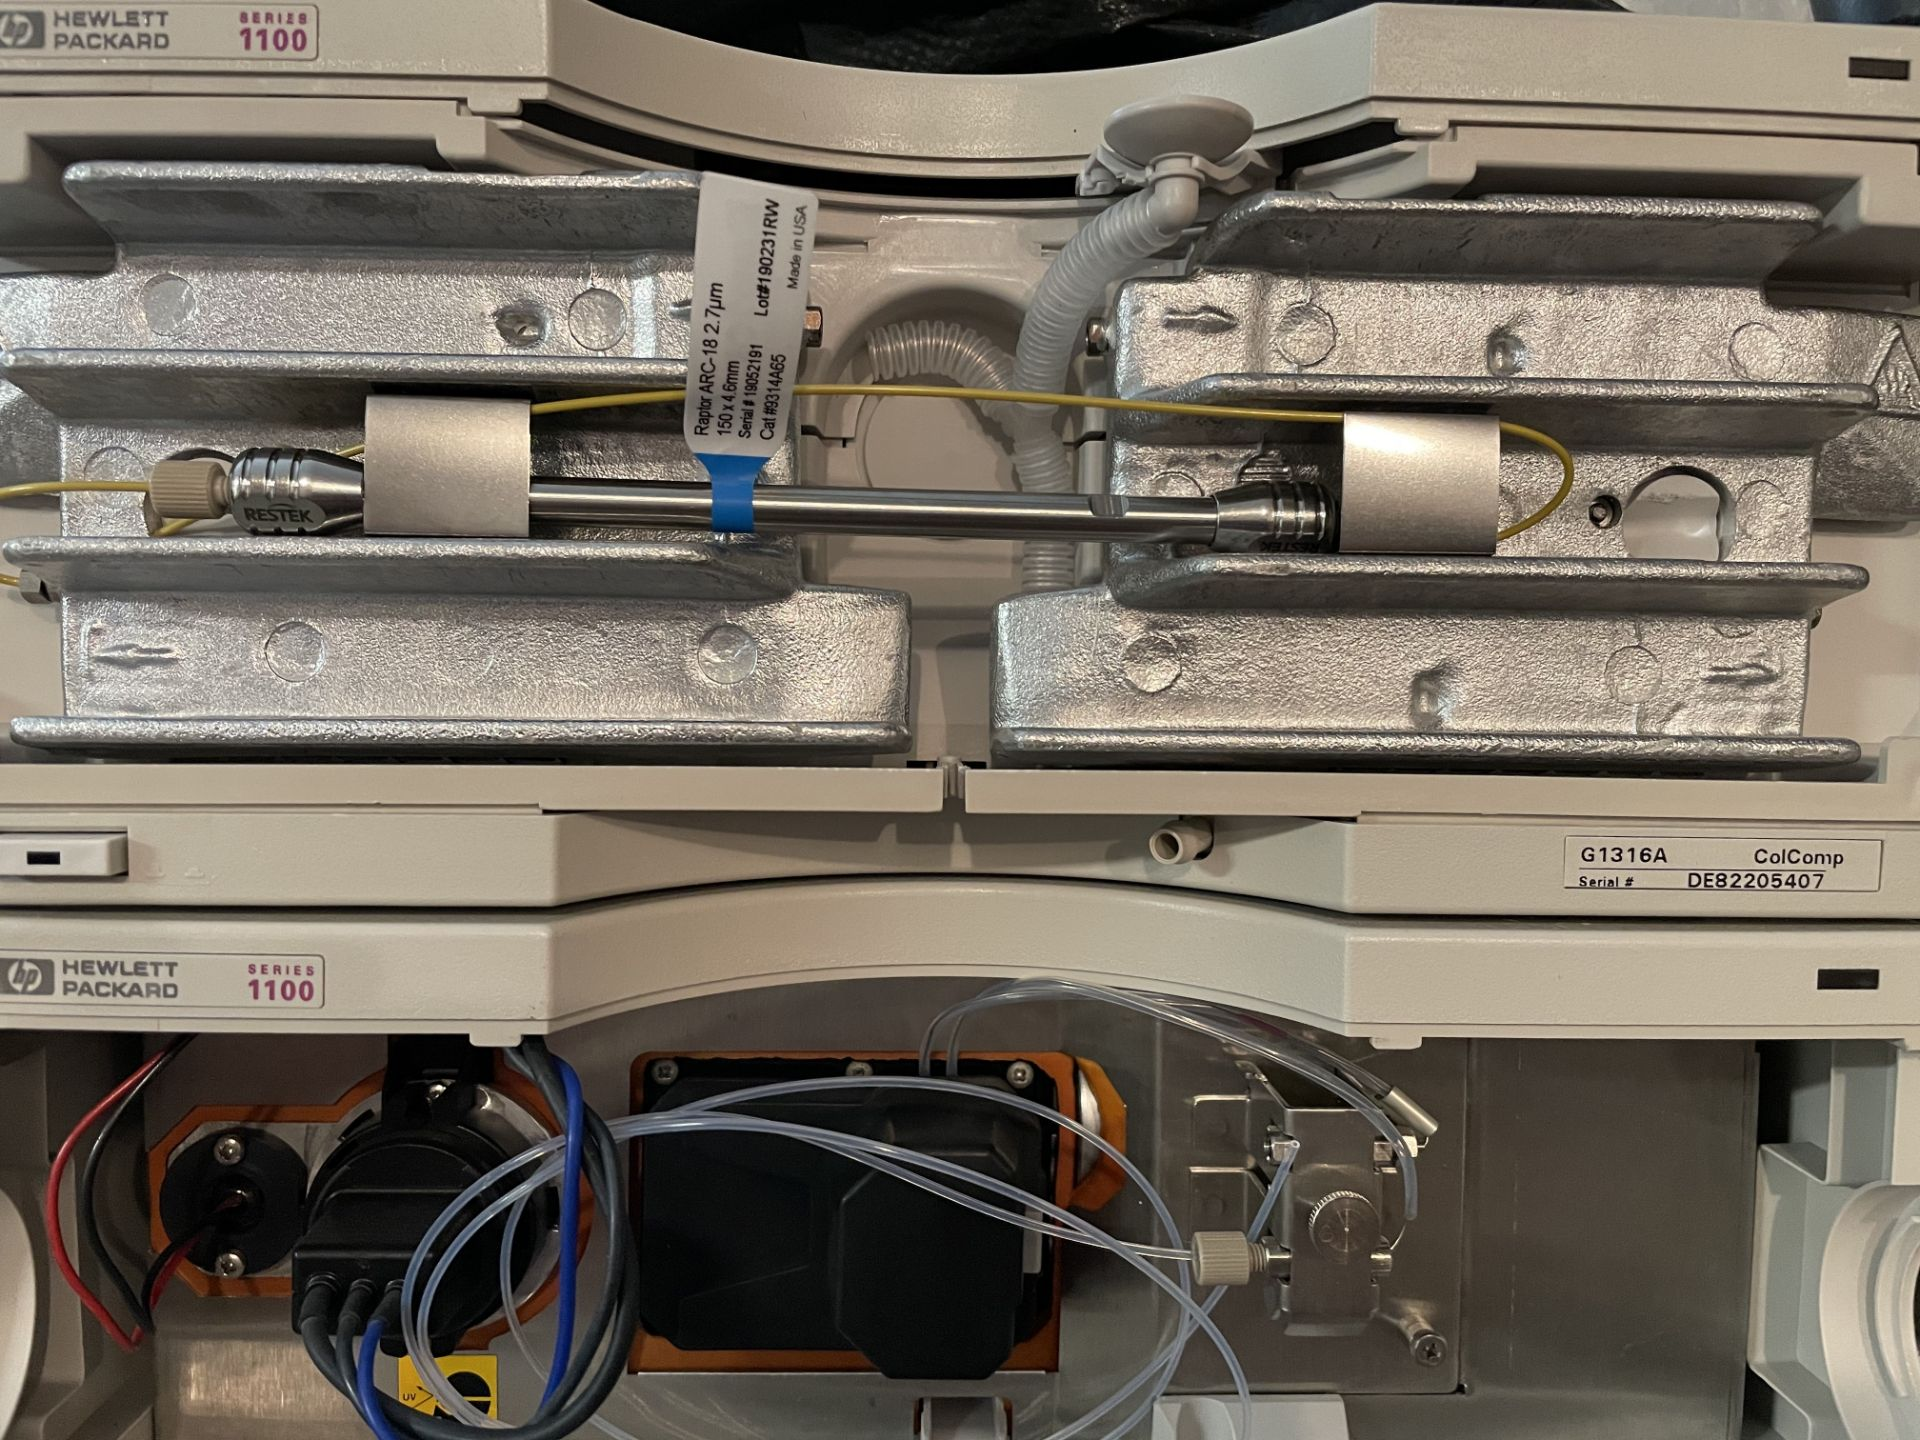 Used Agilent 1100 HPLC. Model 1100. Fully complete & functional cannabinoid potency testing system. - Image 7 of 22